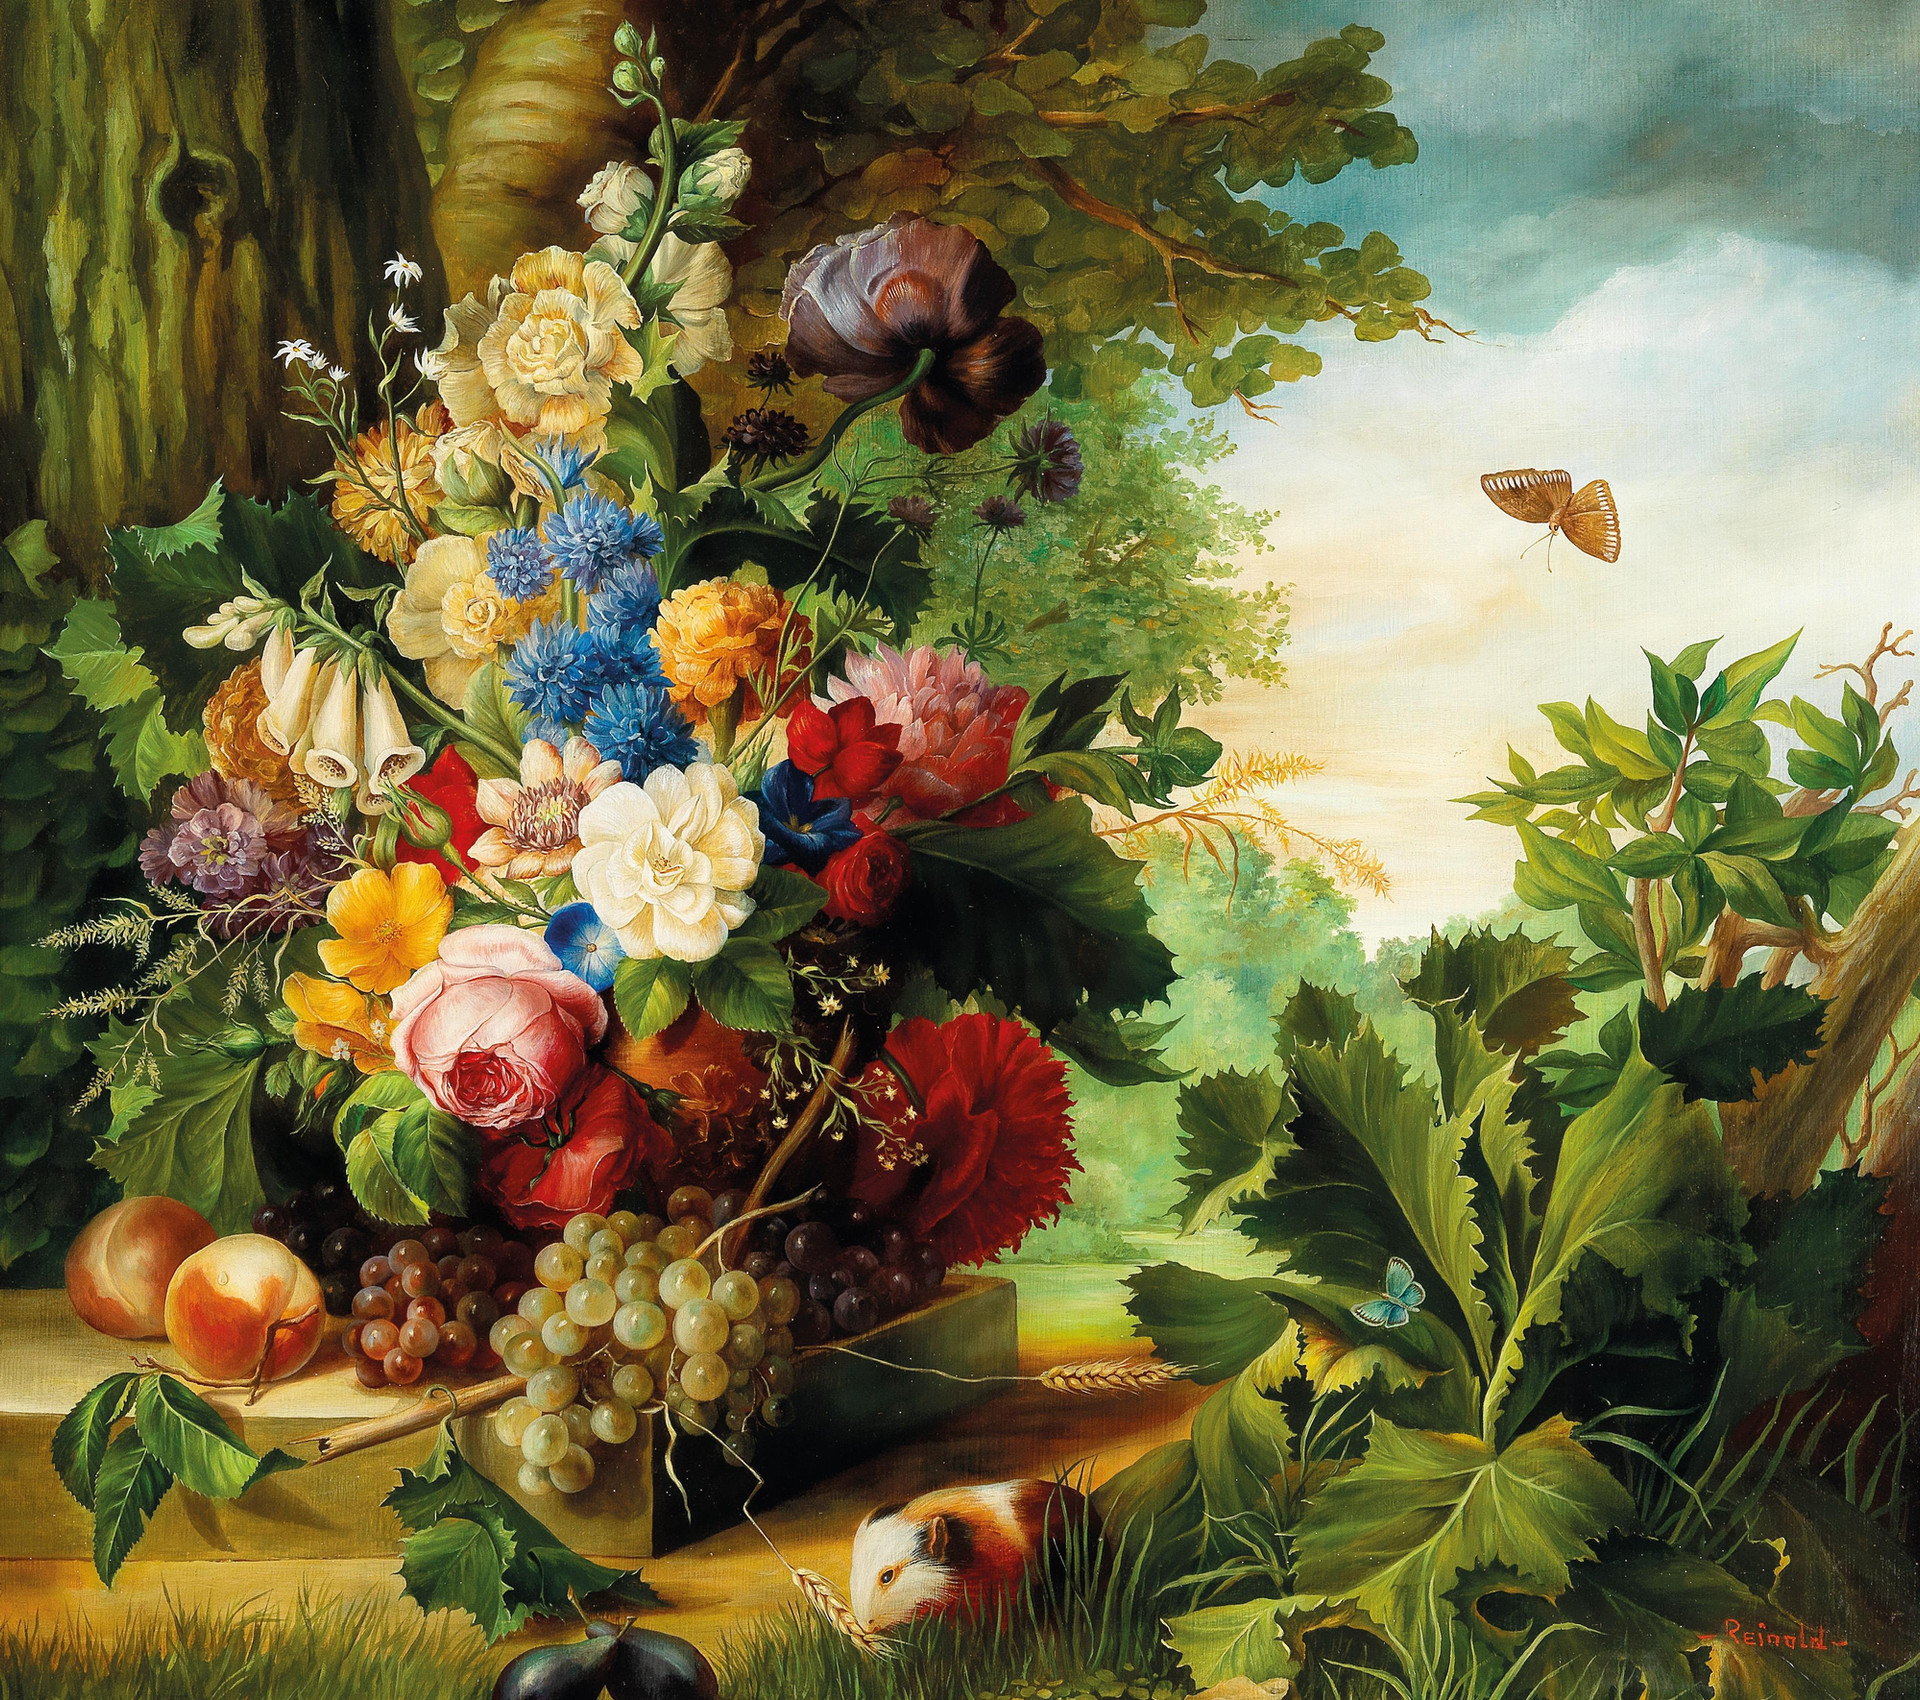 Still Life with Flowers, Butterfly, and Guinea Pig